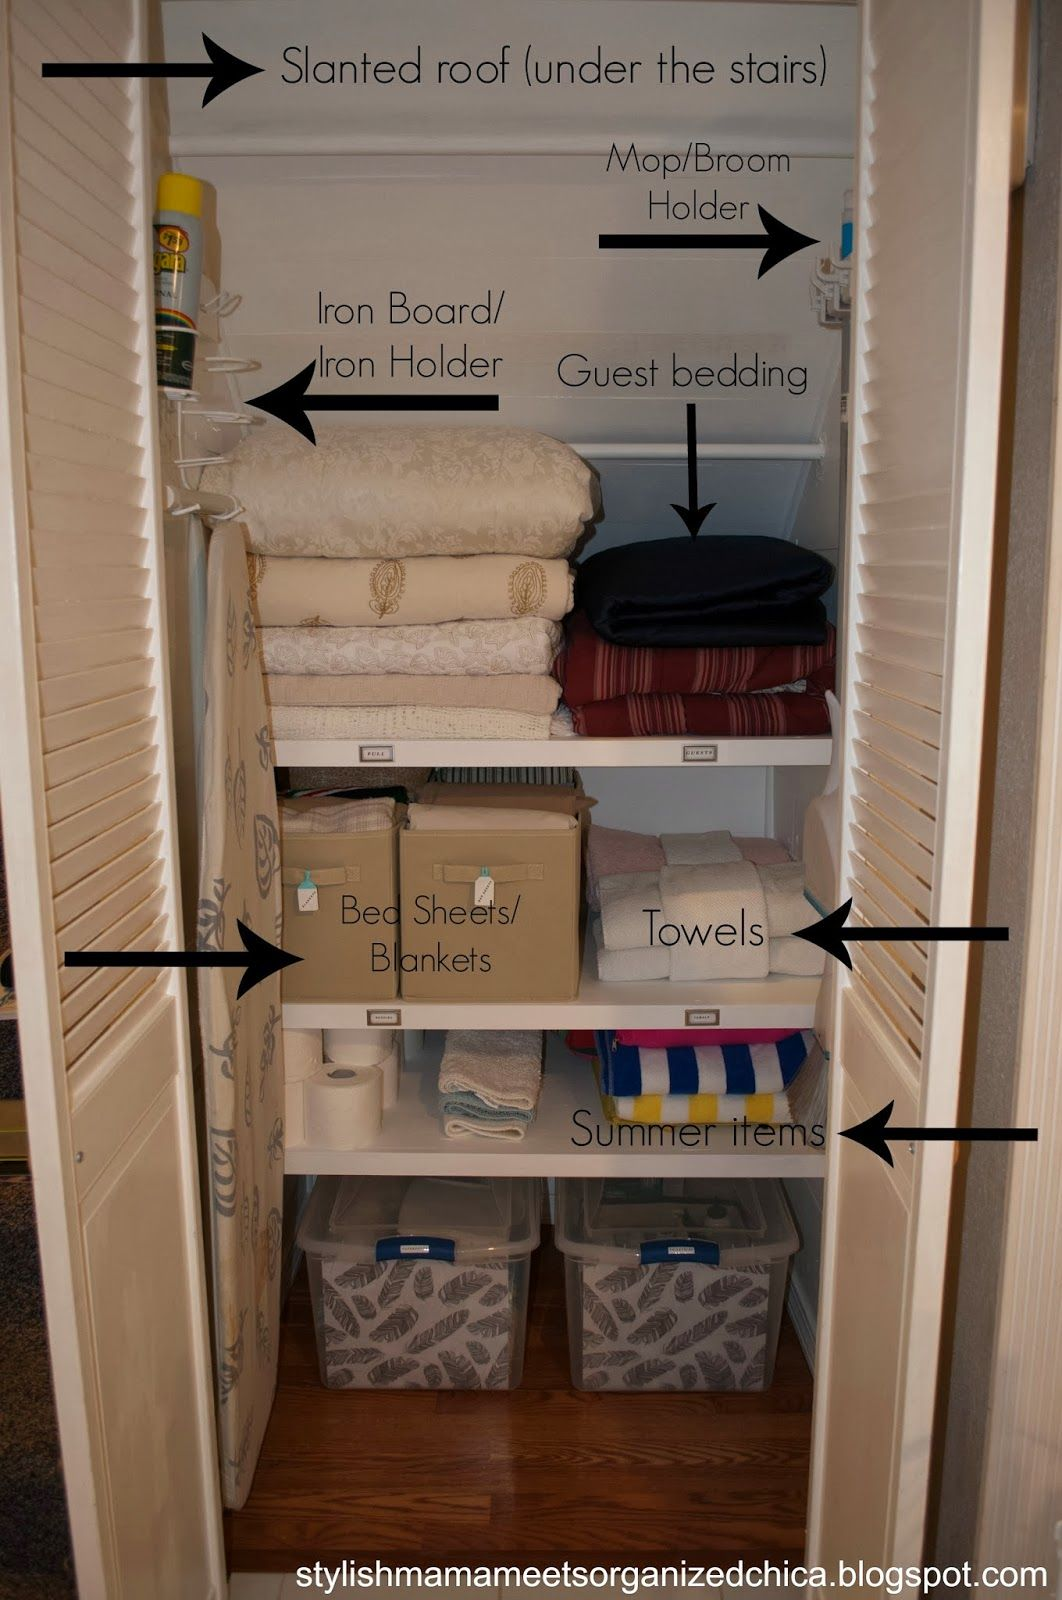 Pin By Marilyn Moreno Hernandez On Organize 101 Store This Shared Board Closet Under Stairs Under Stairs Cupboard Understairs Storage